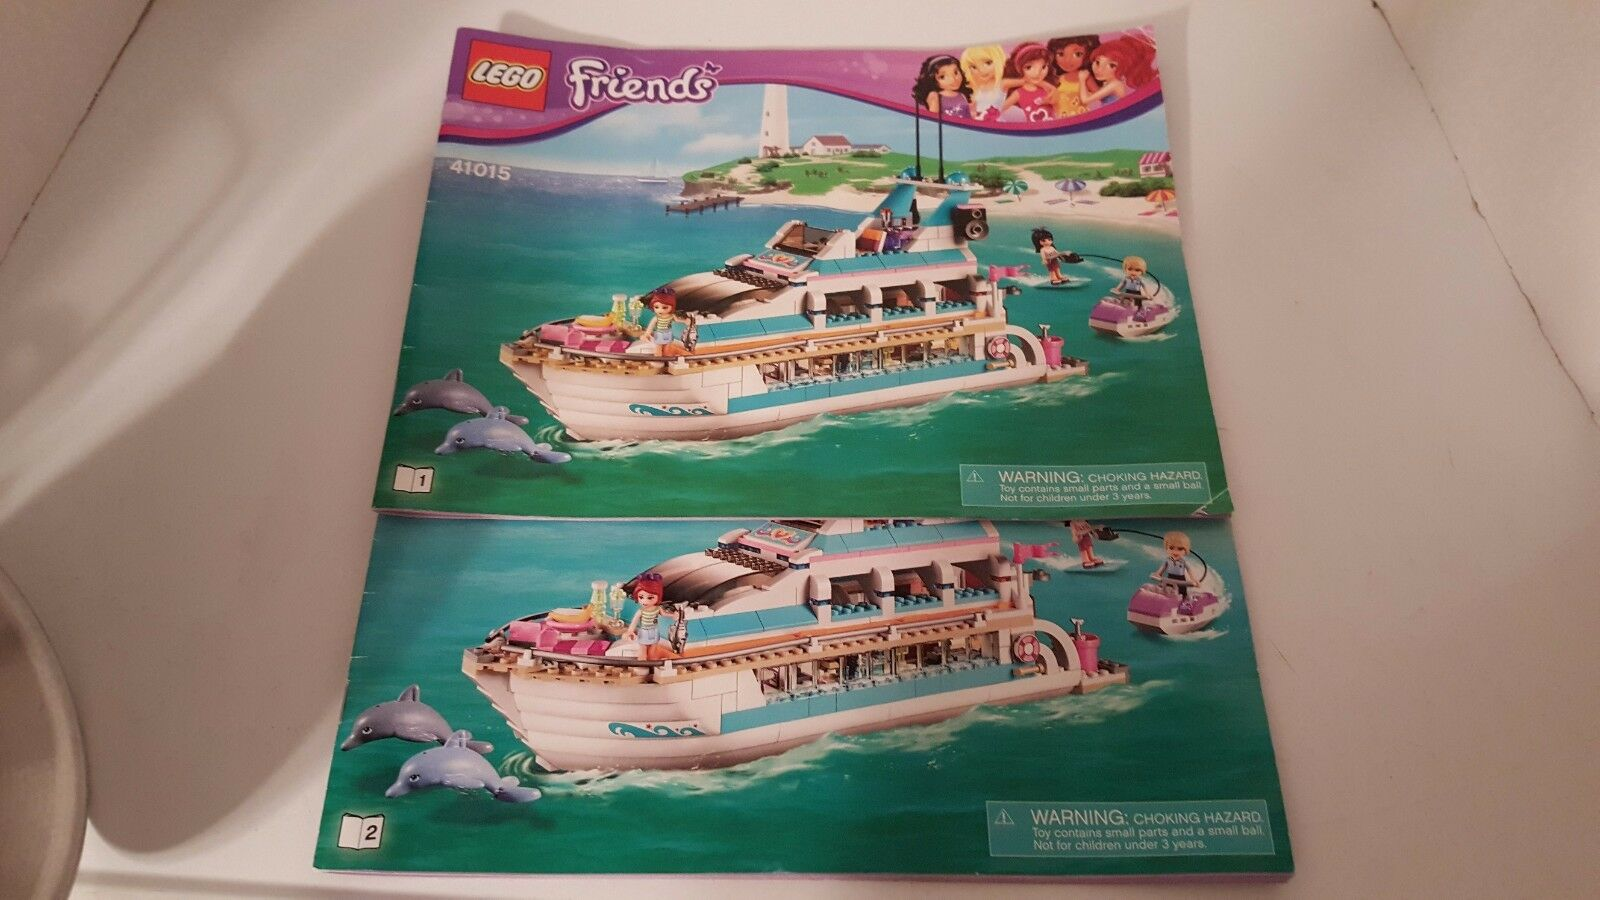 LEGO Friends Dolphin Cruiser (41015) - 100% COMPLETE!!